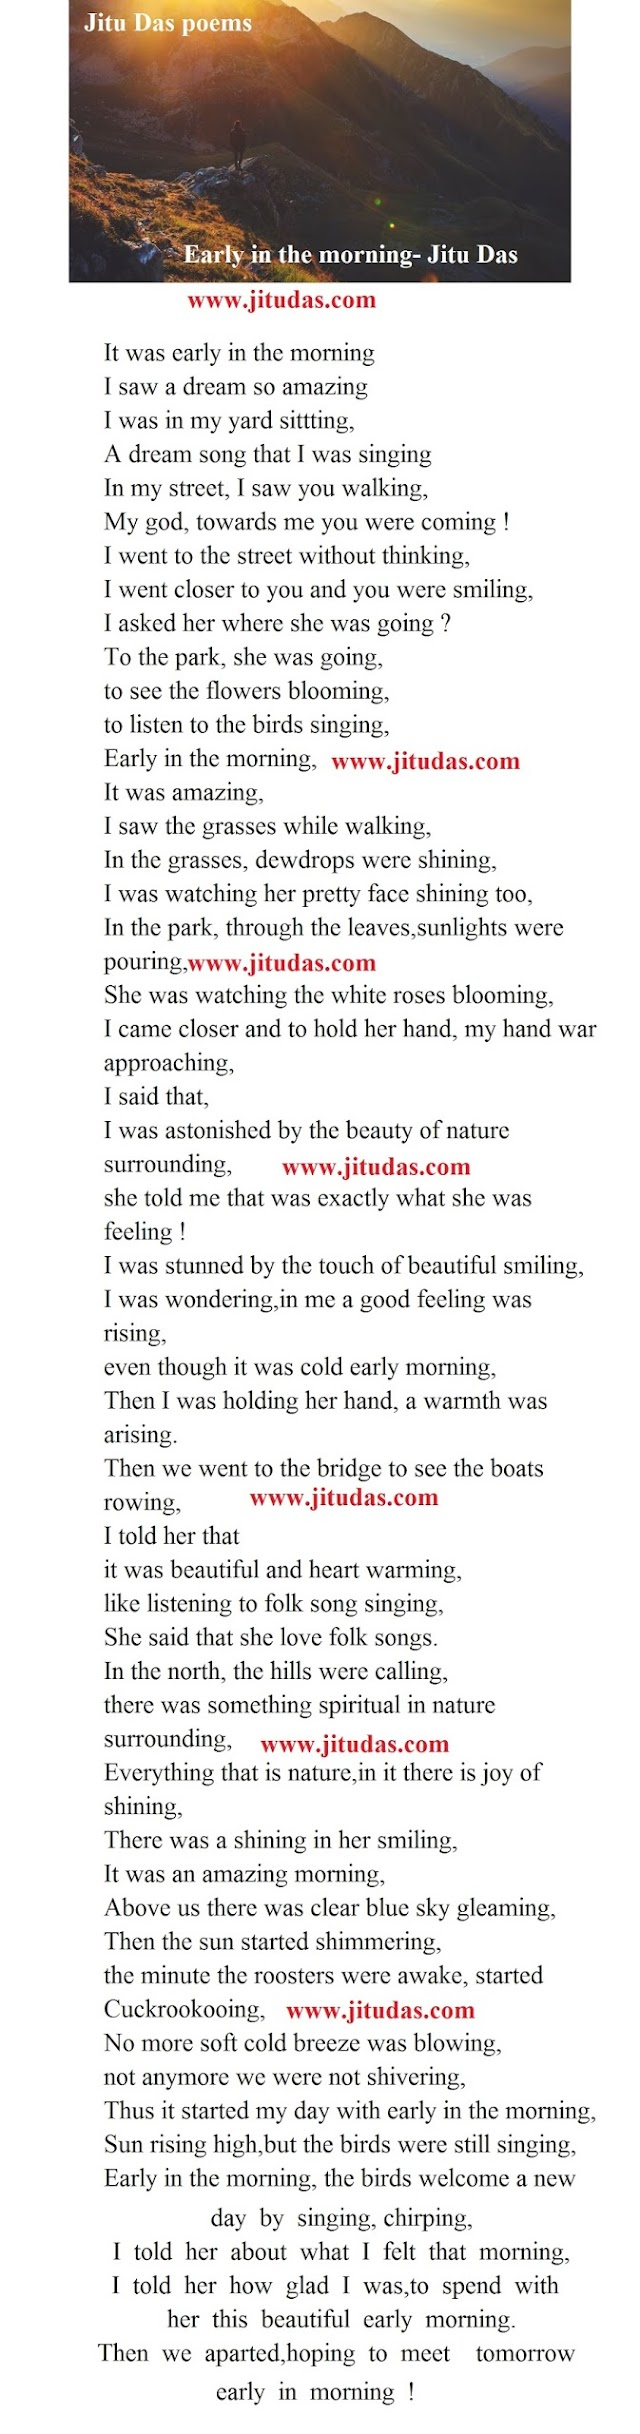 Deep life poem, Early in the morning by Jitu Das english poems